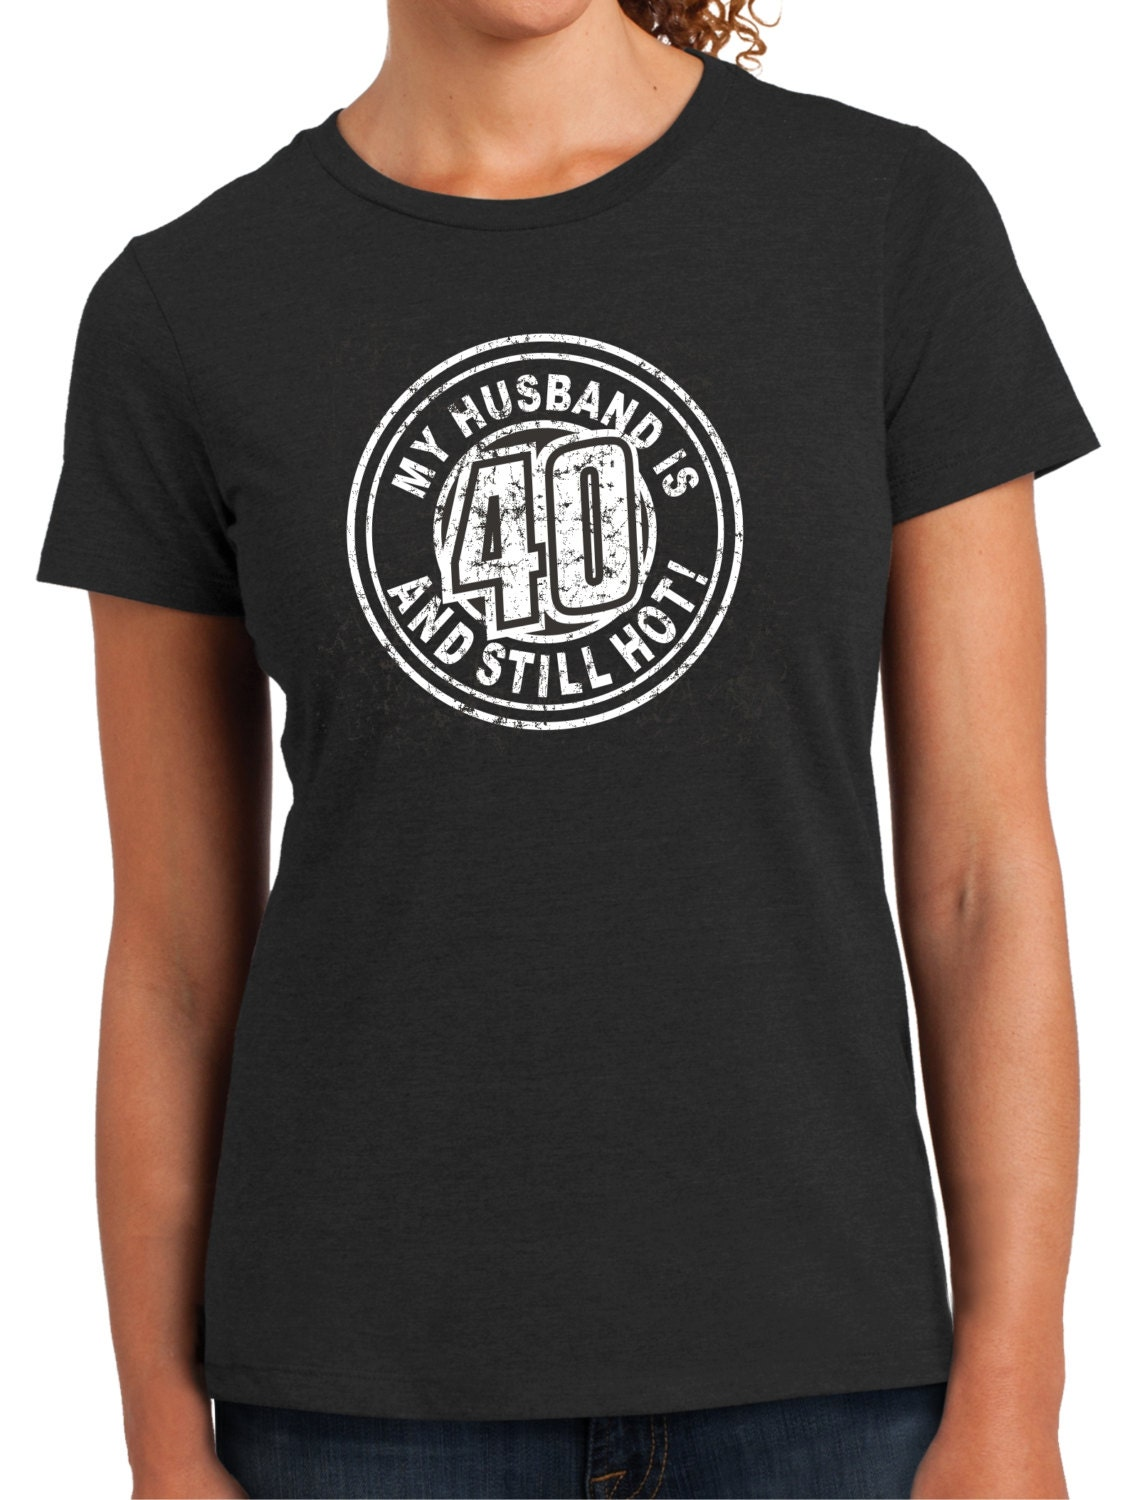 Husband Is Hot 40th Birthday Womens Top